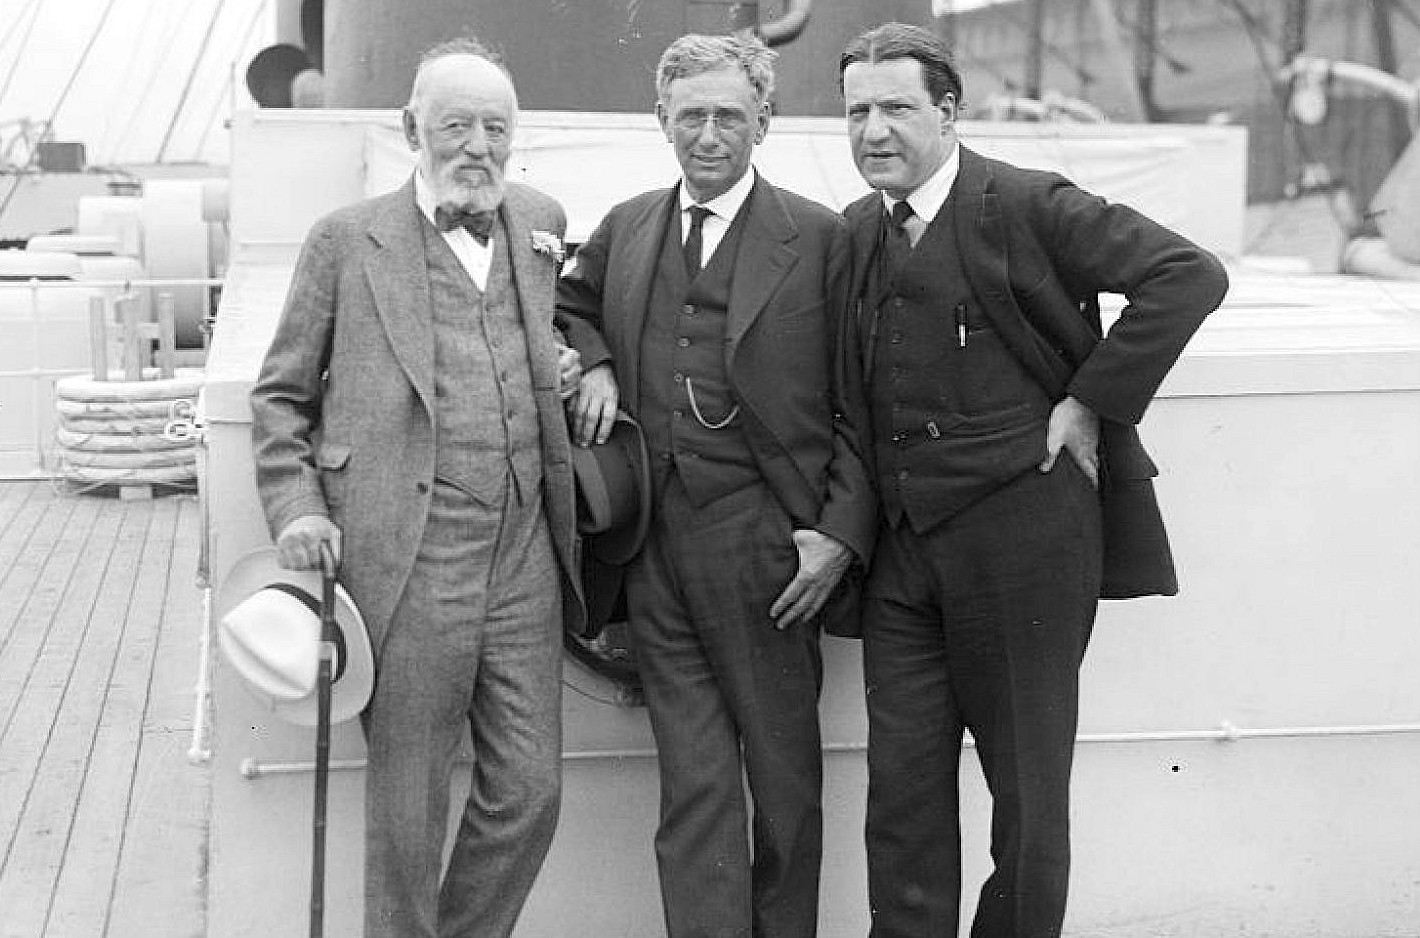 From left: Nathan Straus, Louis Dembitz Brandeis and Stephen Samuel Wise.